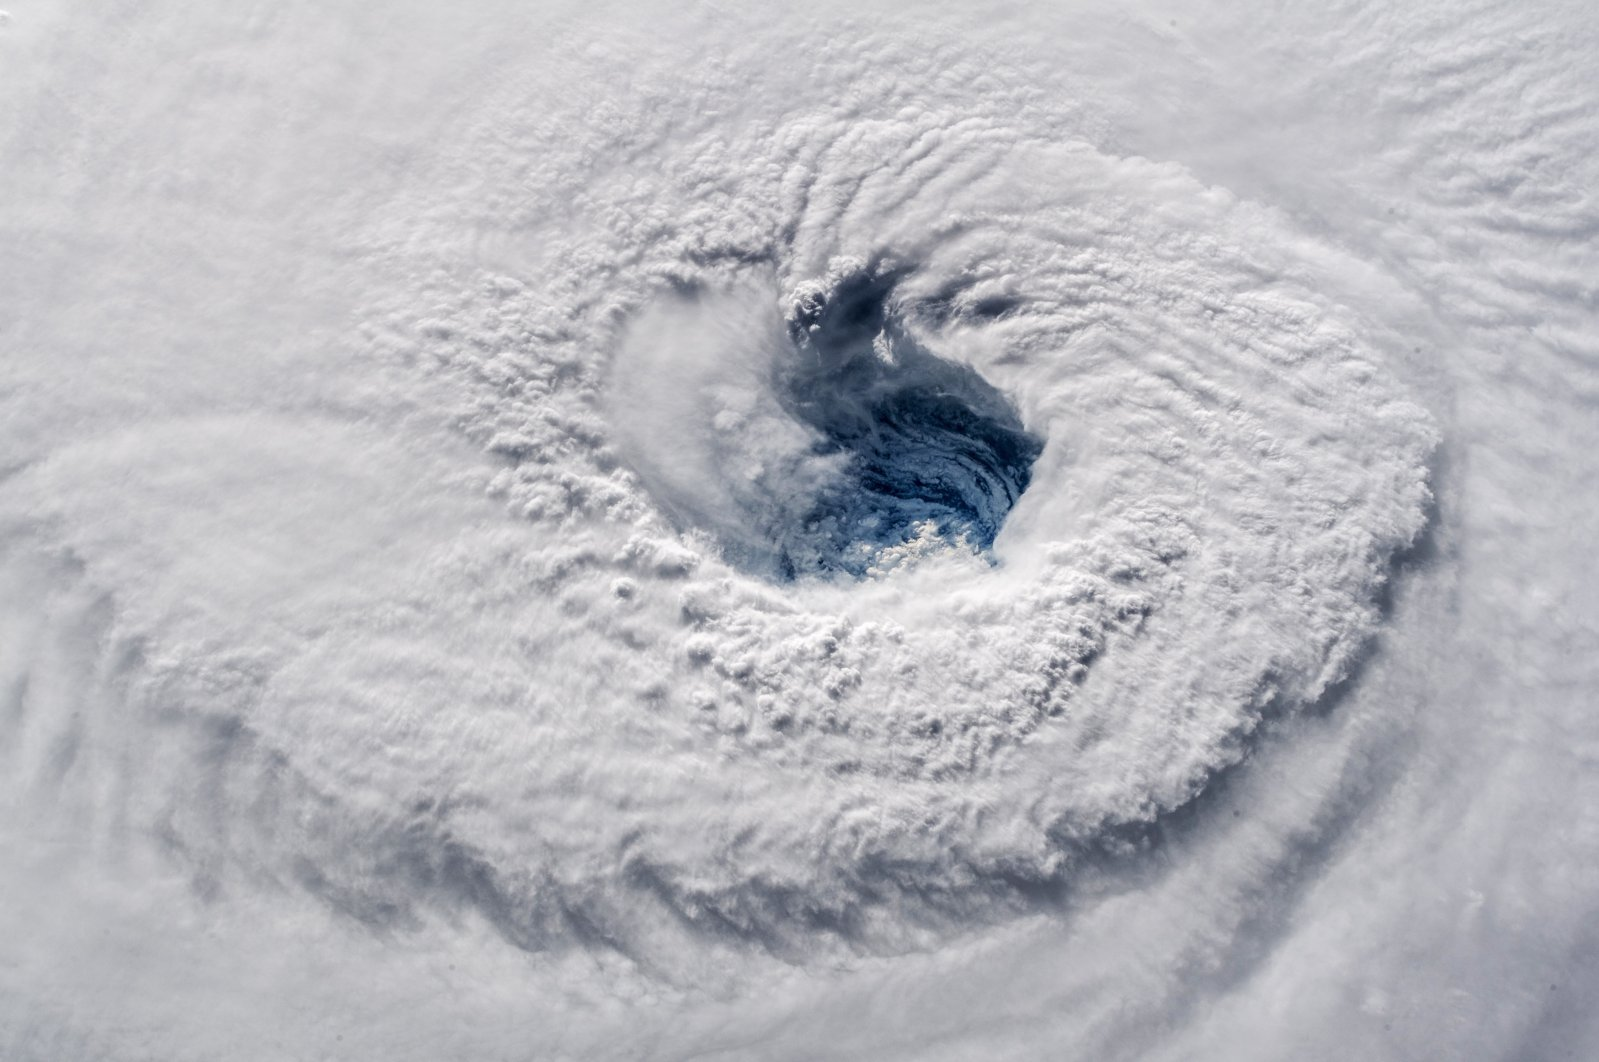 In this photo provided by NASA, Hurricane Florence churns over the Atlantic Ocean heading for the U.S. East Coast as seen from the International Space Station, Sept. 12, 2018. (Alexander Gerst/ESA/NASA via AP)